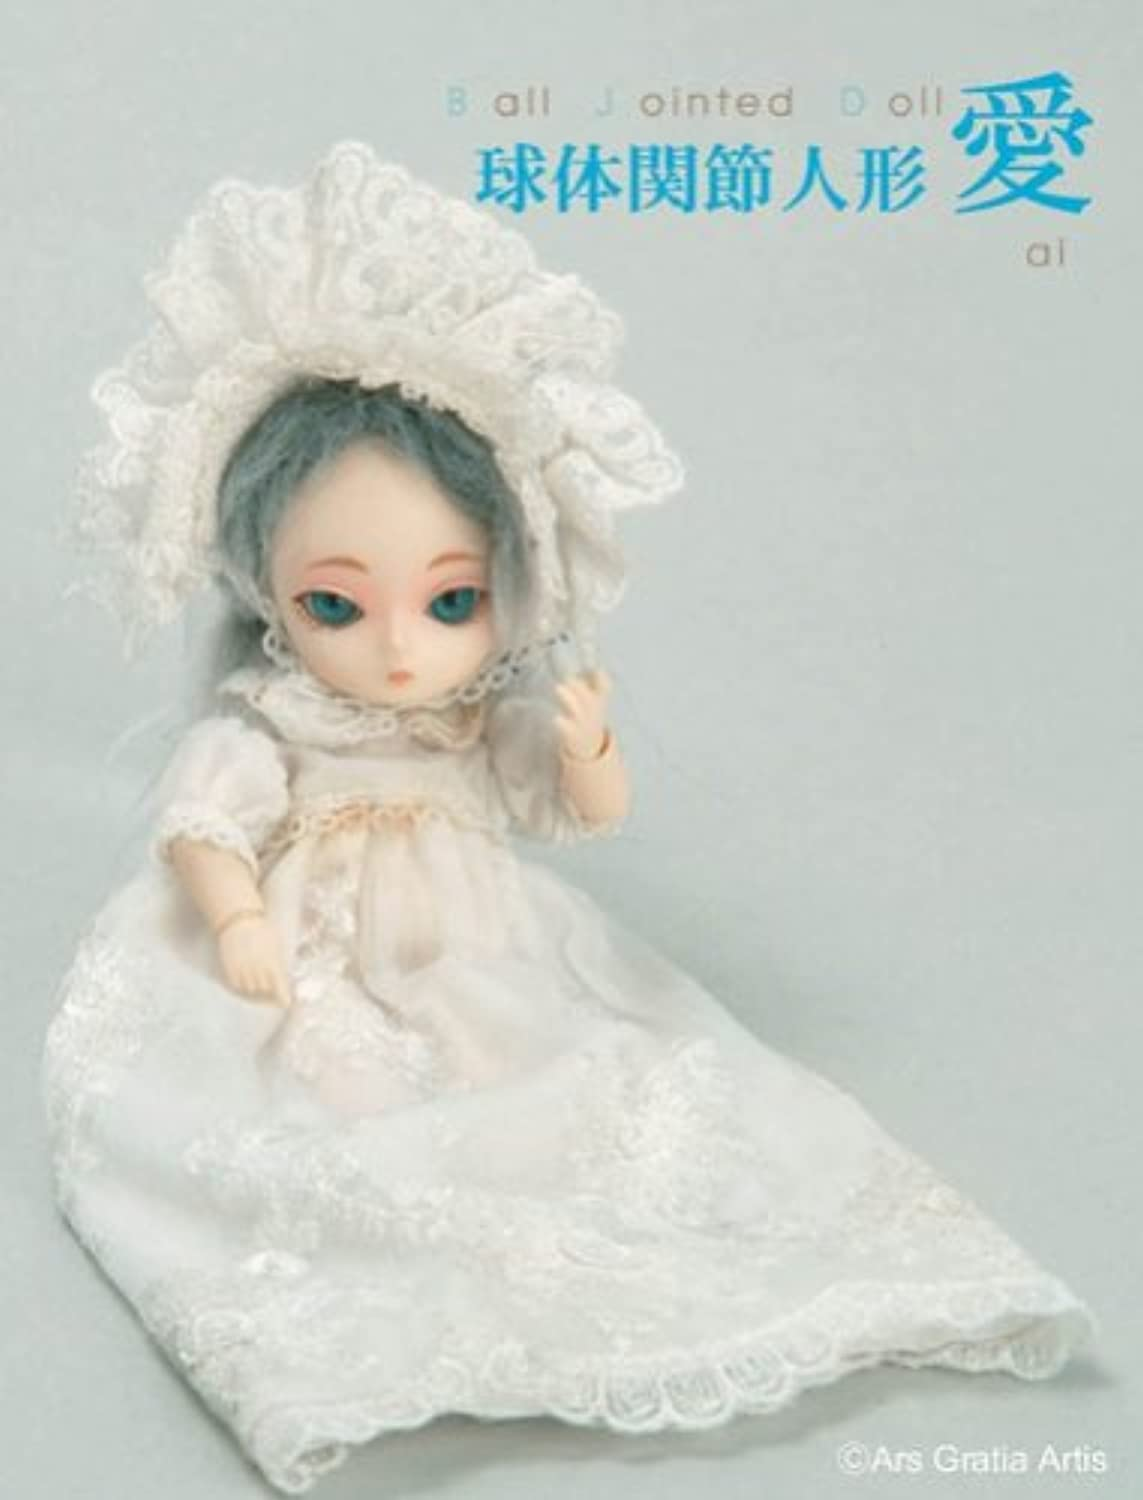 barato en alta calidad Jun Planning Planning Planning Ai Ball Jointed Doll Snowflake Q-700  gran descuento